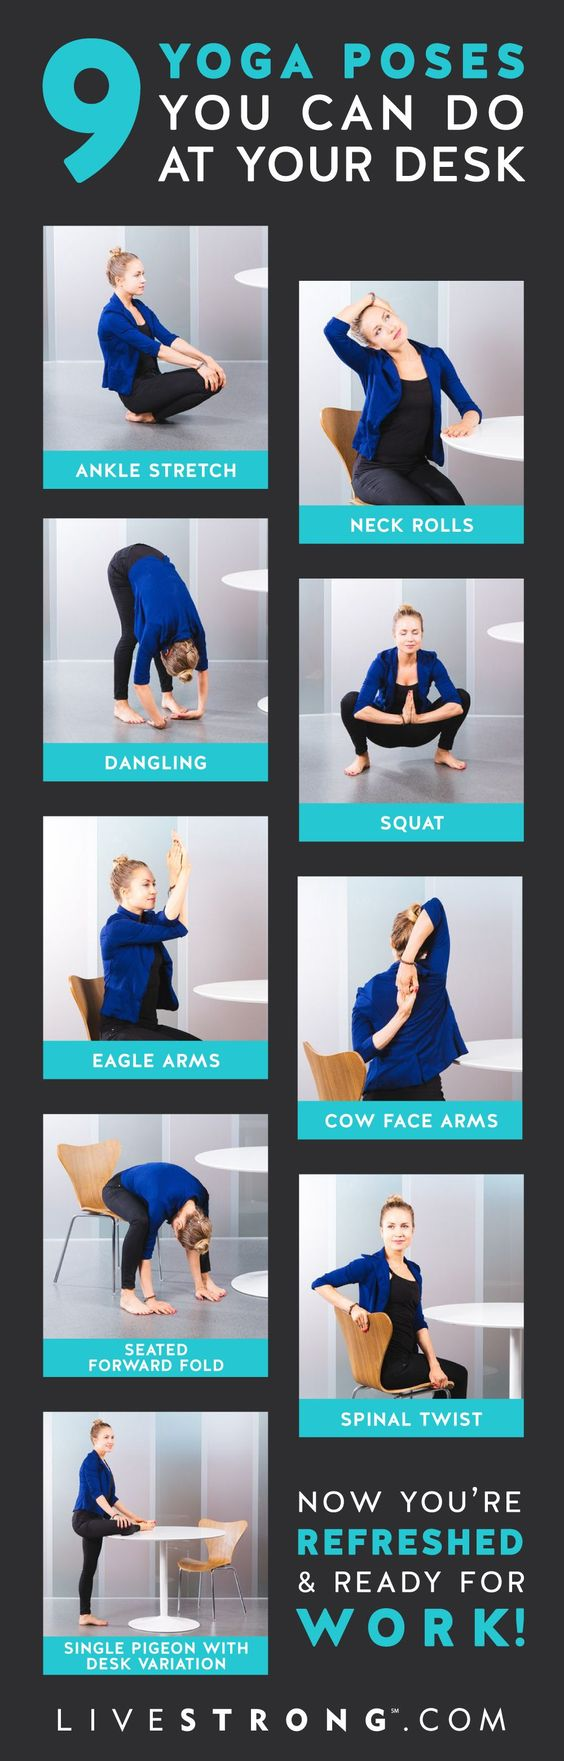 9 Yoga Poses You Can Do at Your Desk Right Now | Yoga ...